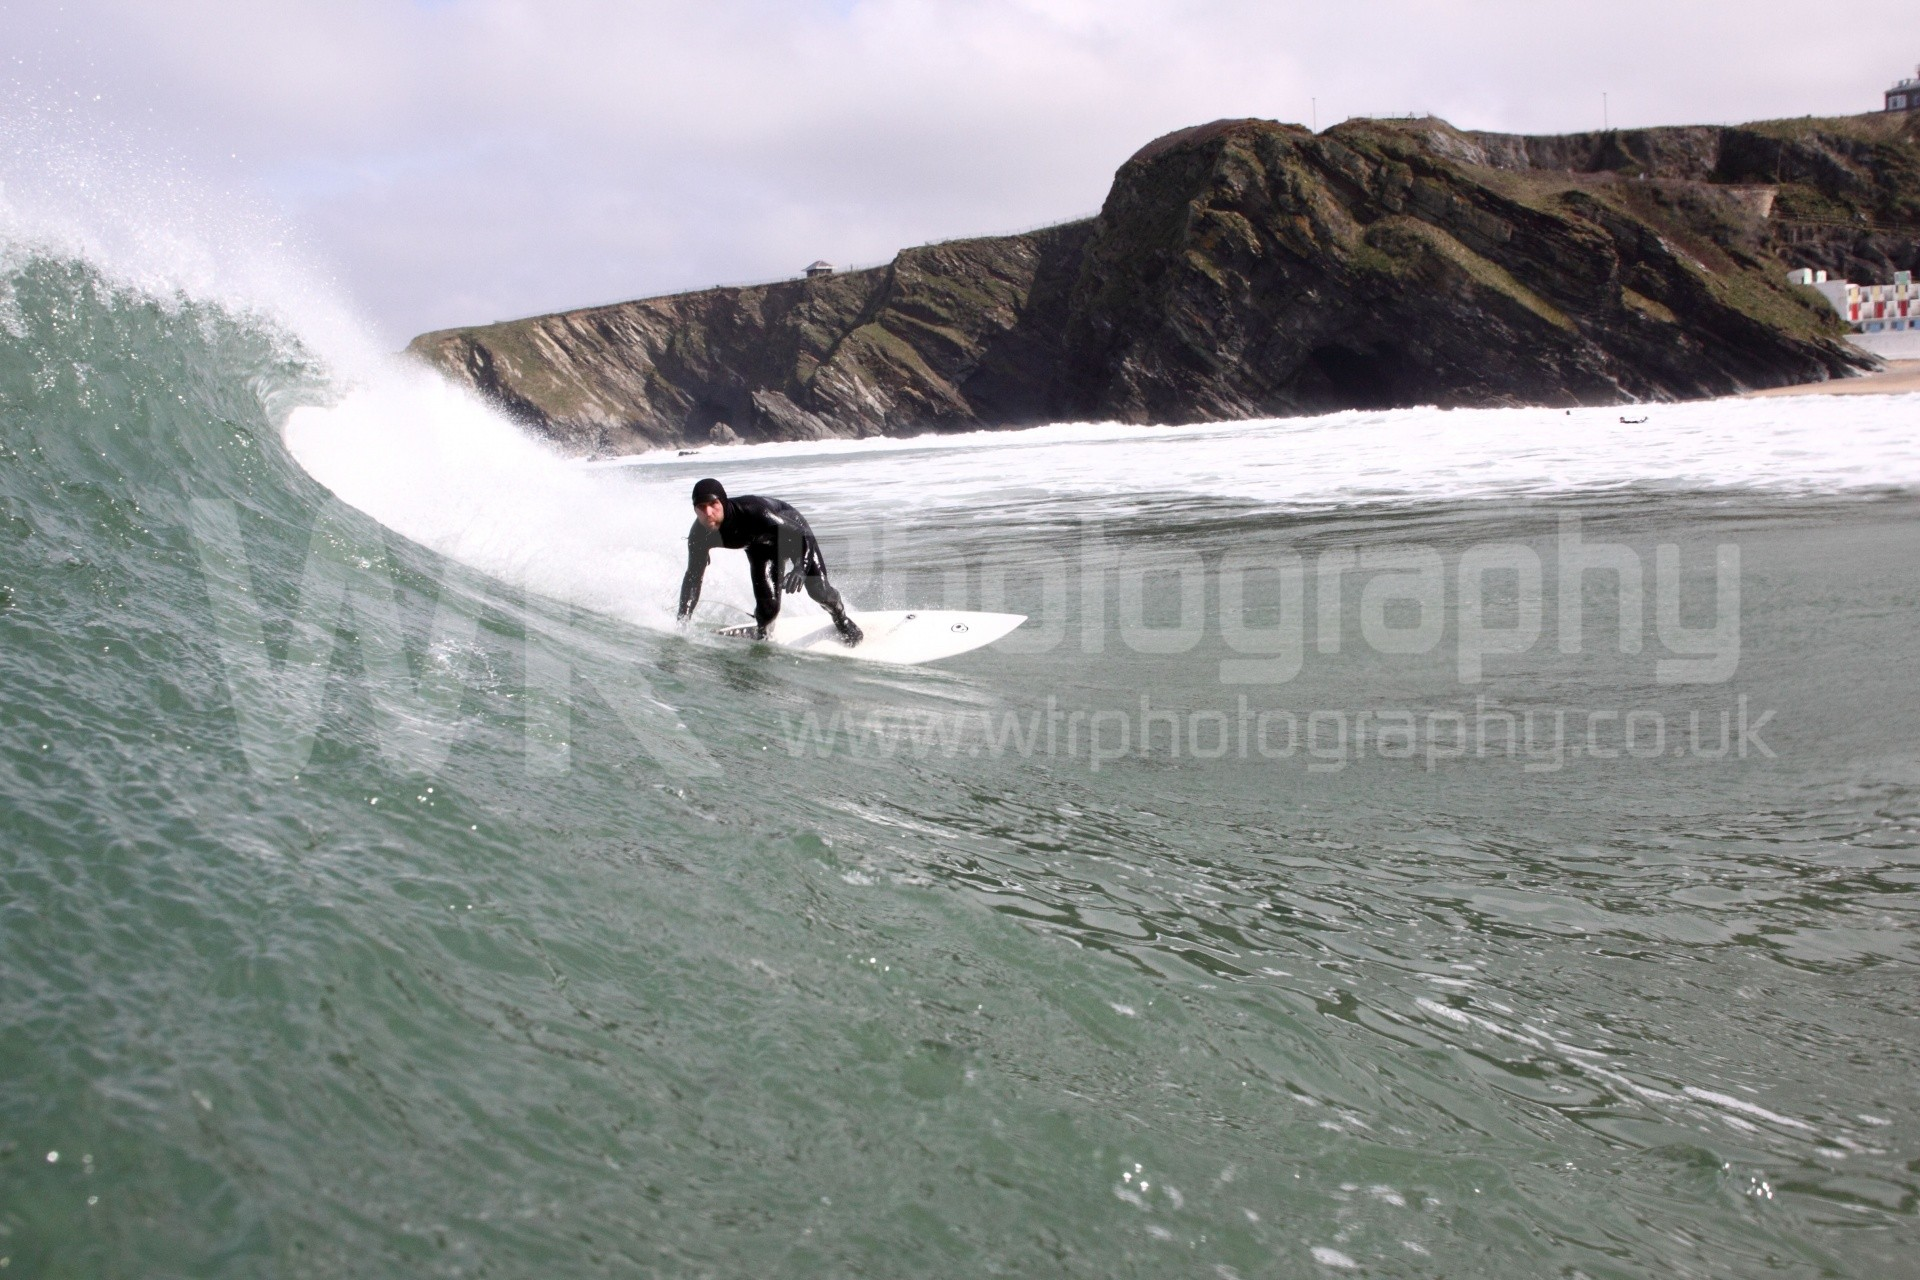 Will Reddaway's photo of Newquay - Tolcarne Wedge